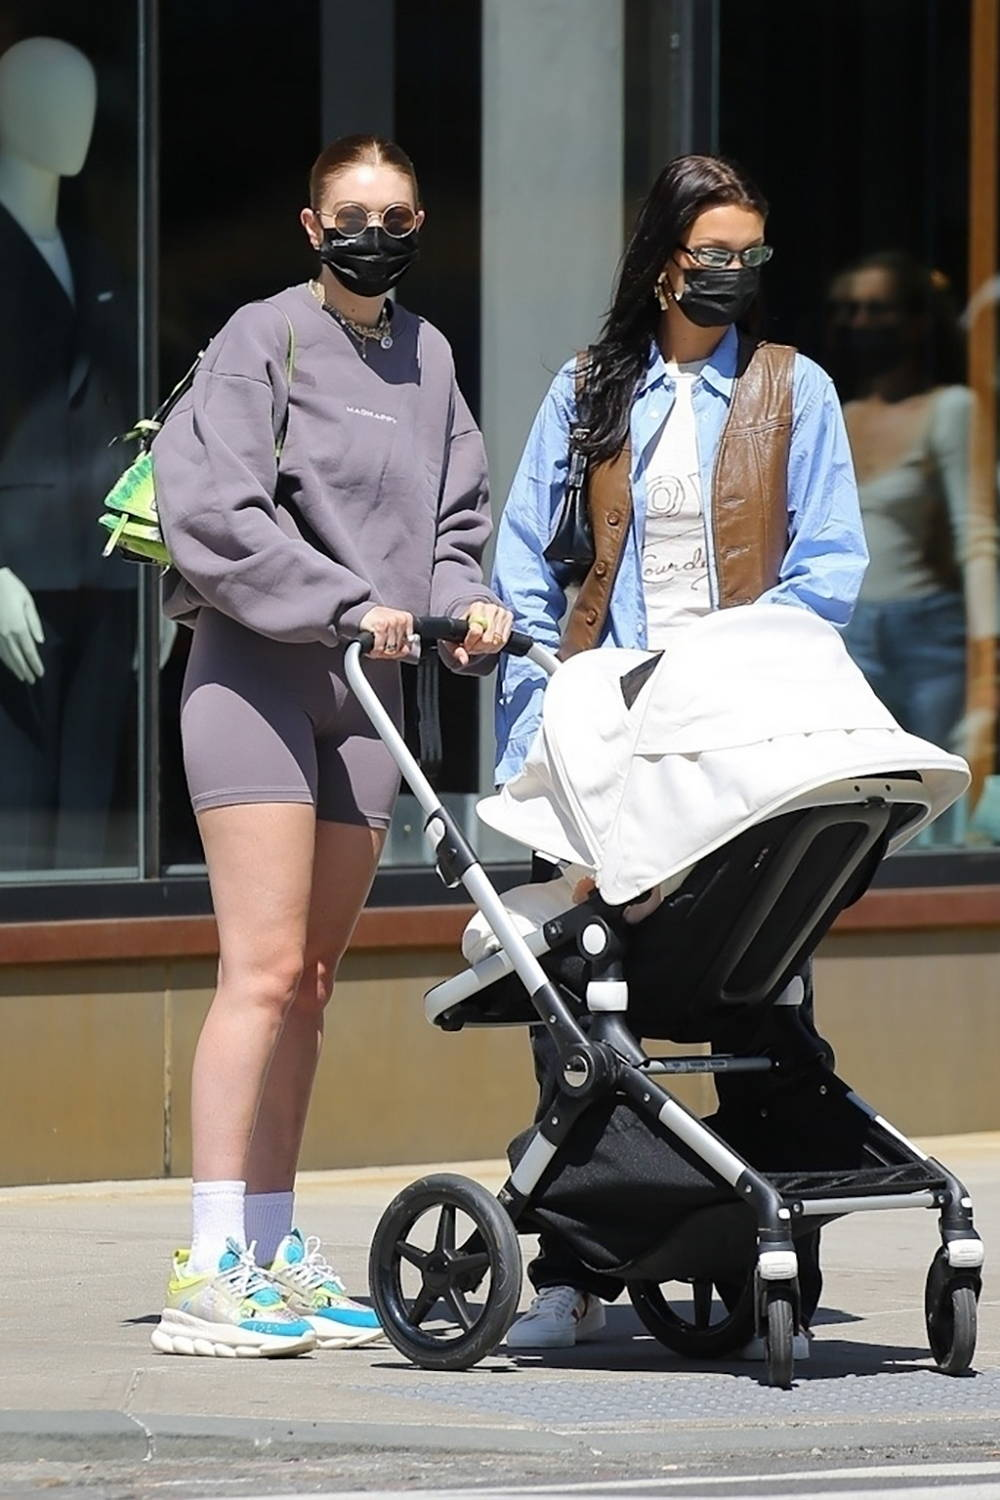 Gigi Hadid takes her daughter out for a stroll during a lunch outing with Bella Hadid in New York City